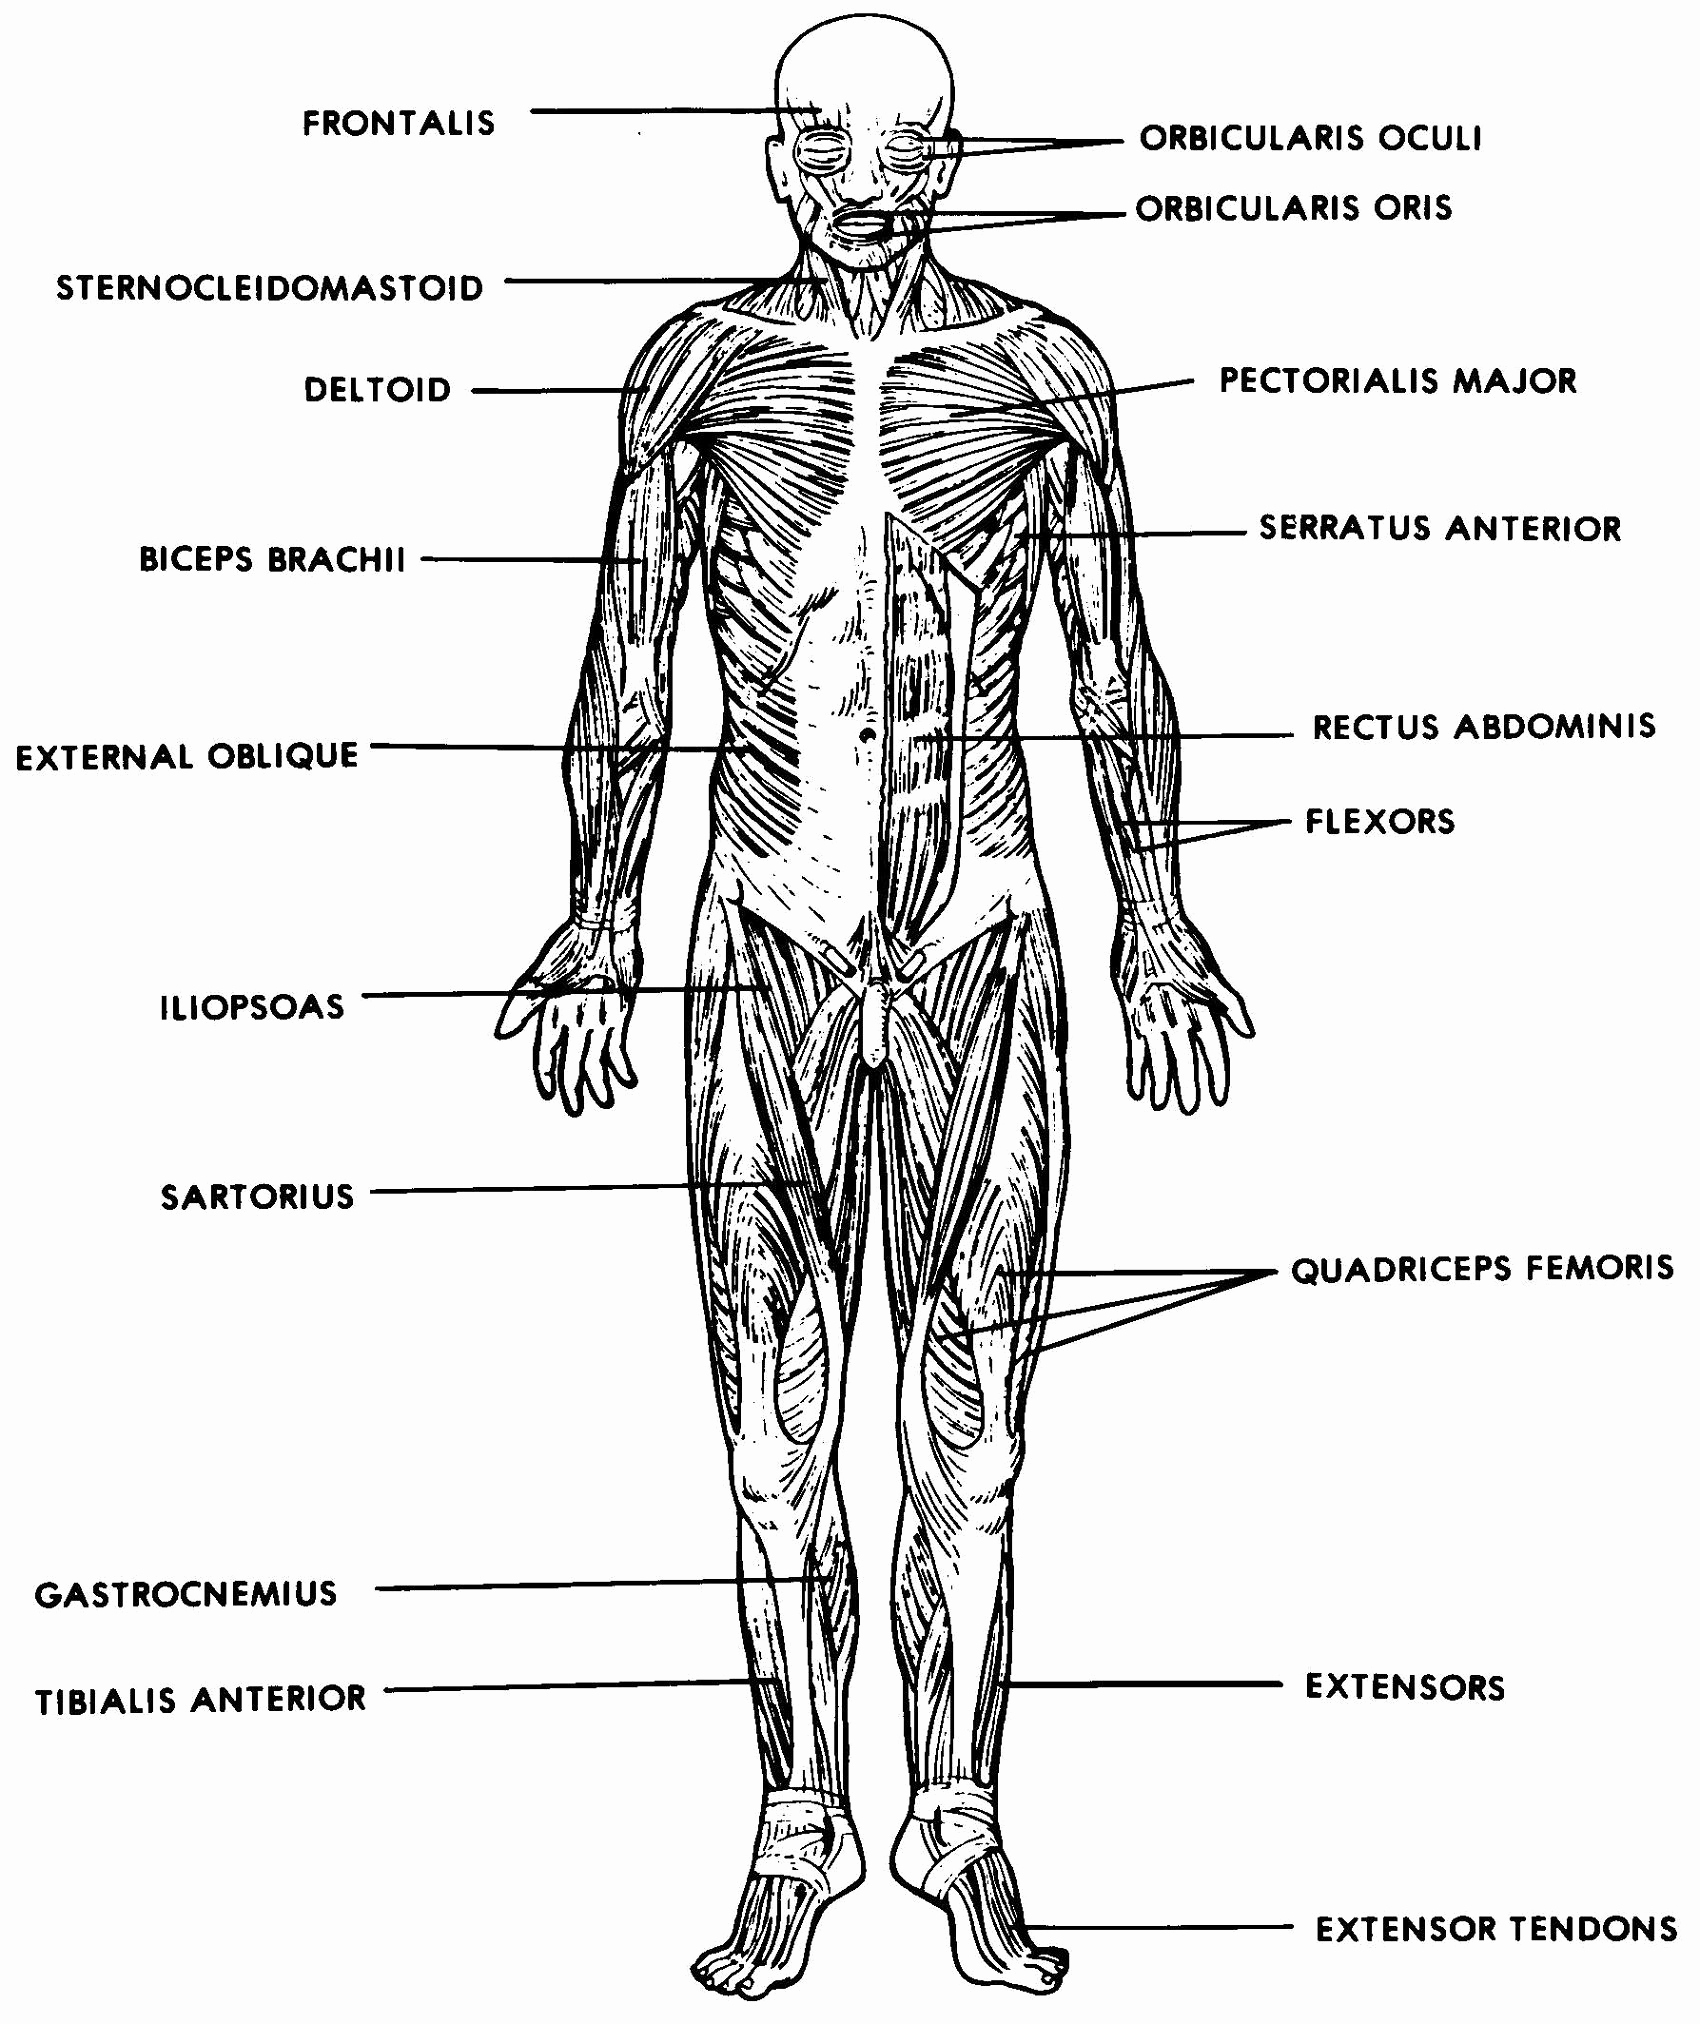 Muscle Diagram Worksheets Elegant the Muscular System Labeled